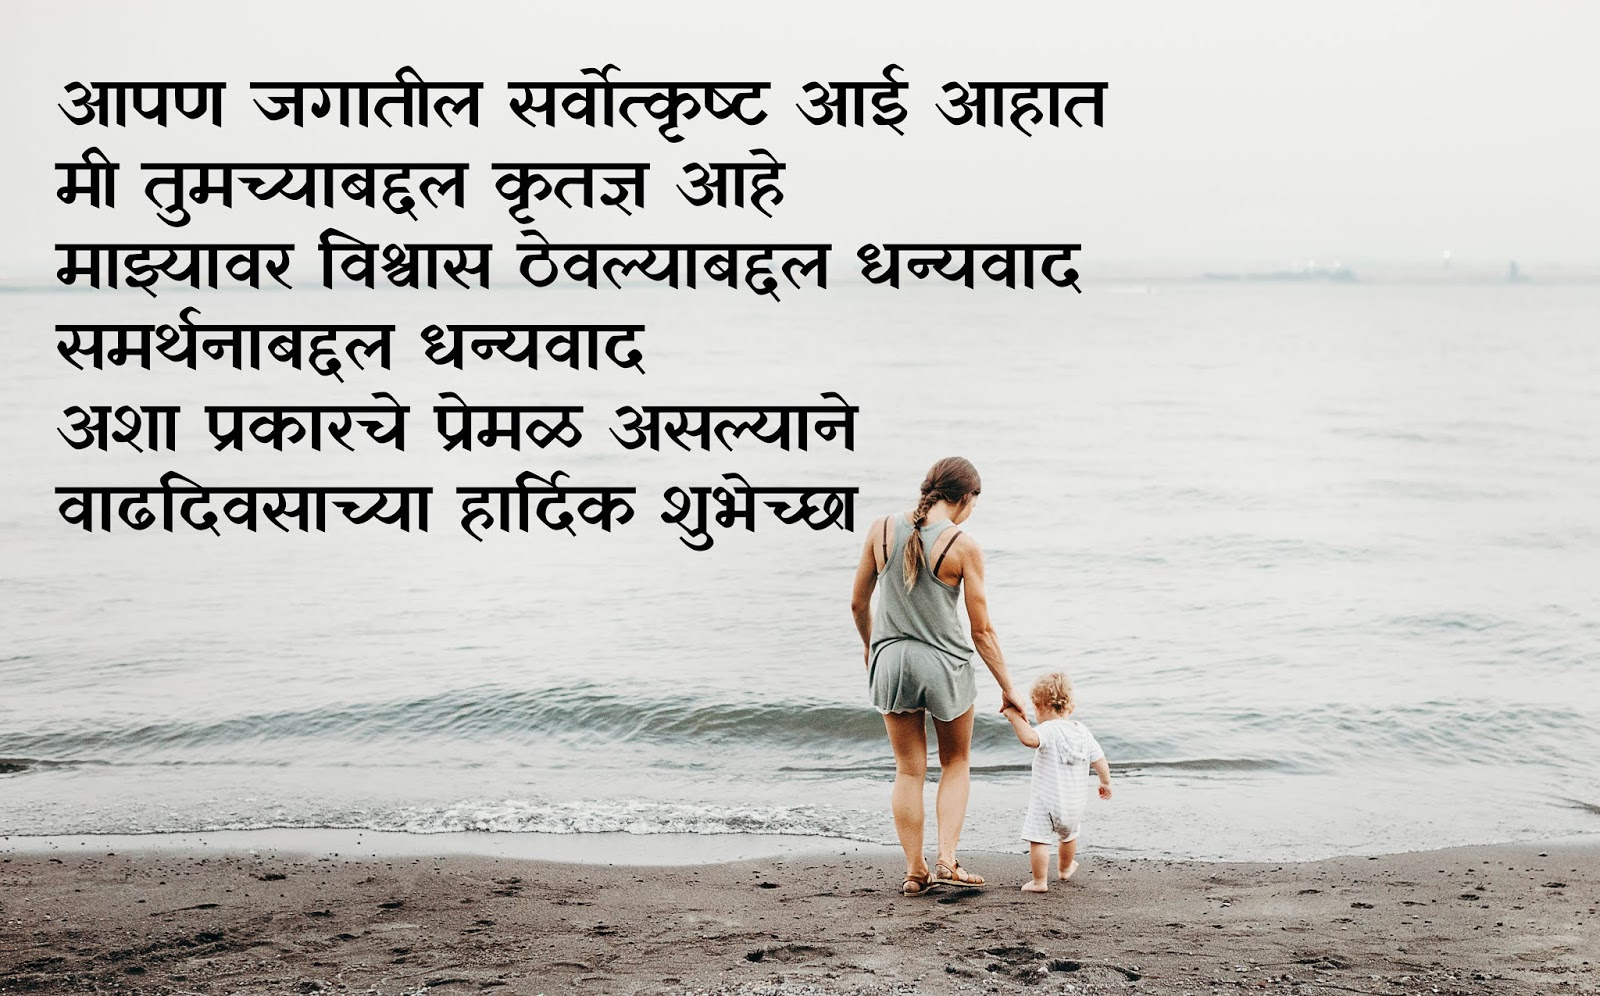 Happy Birthday Wishes For Mother In Marathi À¤µ À¤¢à¤¦ À¤µà¤¸ À¤š À¤¯ À¤¶ À¤ À¤š À¤¯